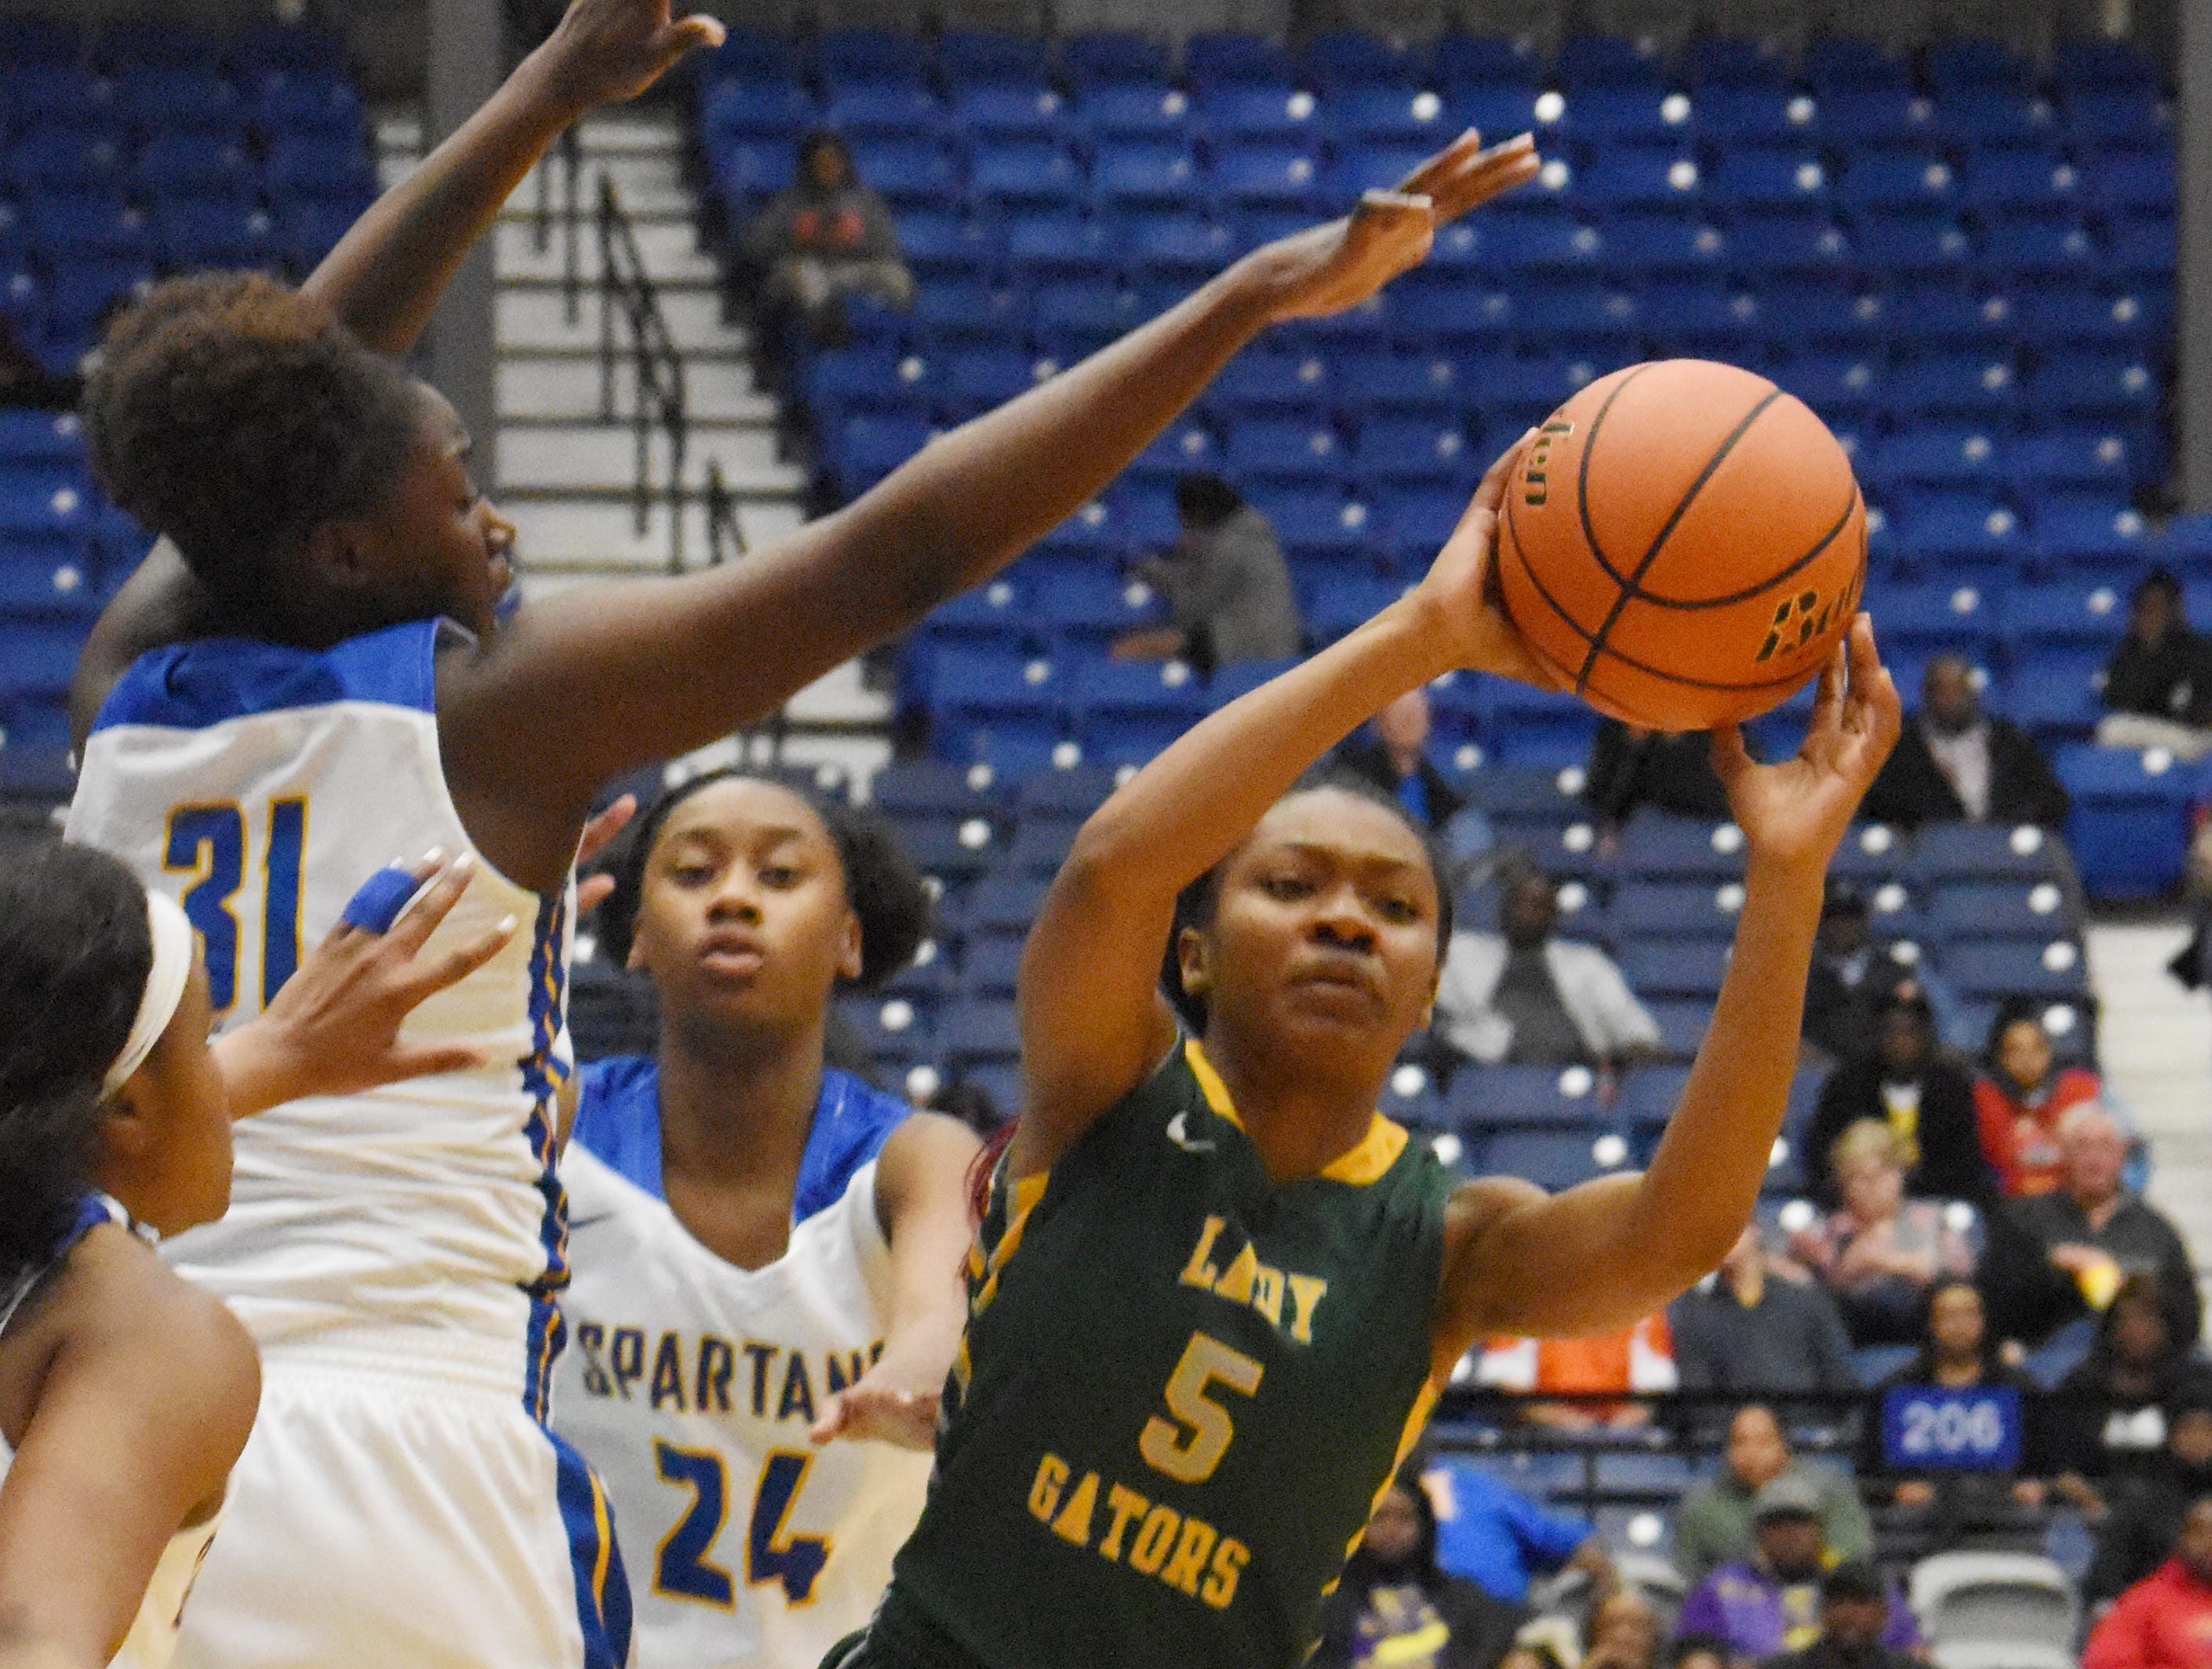 Captain Shreve vs.East Ascension in the Class 5A semifinal game of the 2019 Allstate Sugar Bowl 2019 Louisiana High School Athletic Association Girl's State Basketball Marsh Madness held Thursday, Feb. 28, 2019 at the Rapides Parish Coliseum in Alexandria. Captain Shreve won 65-48.